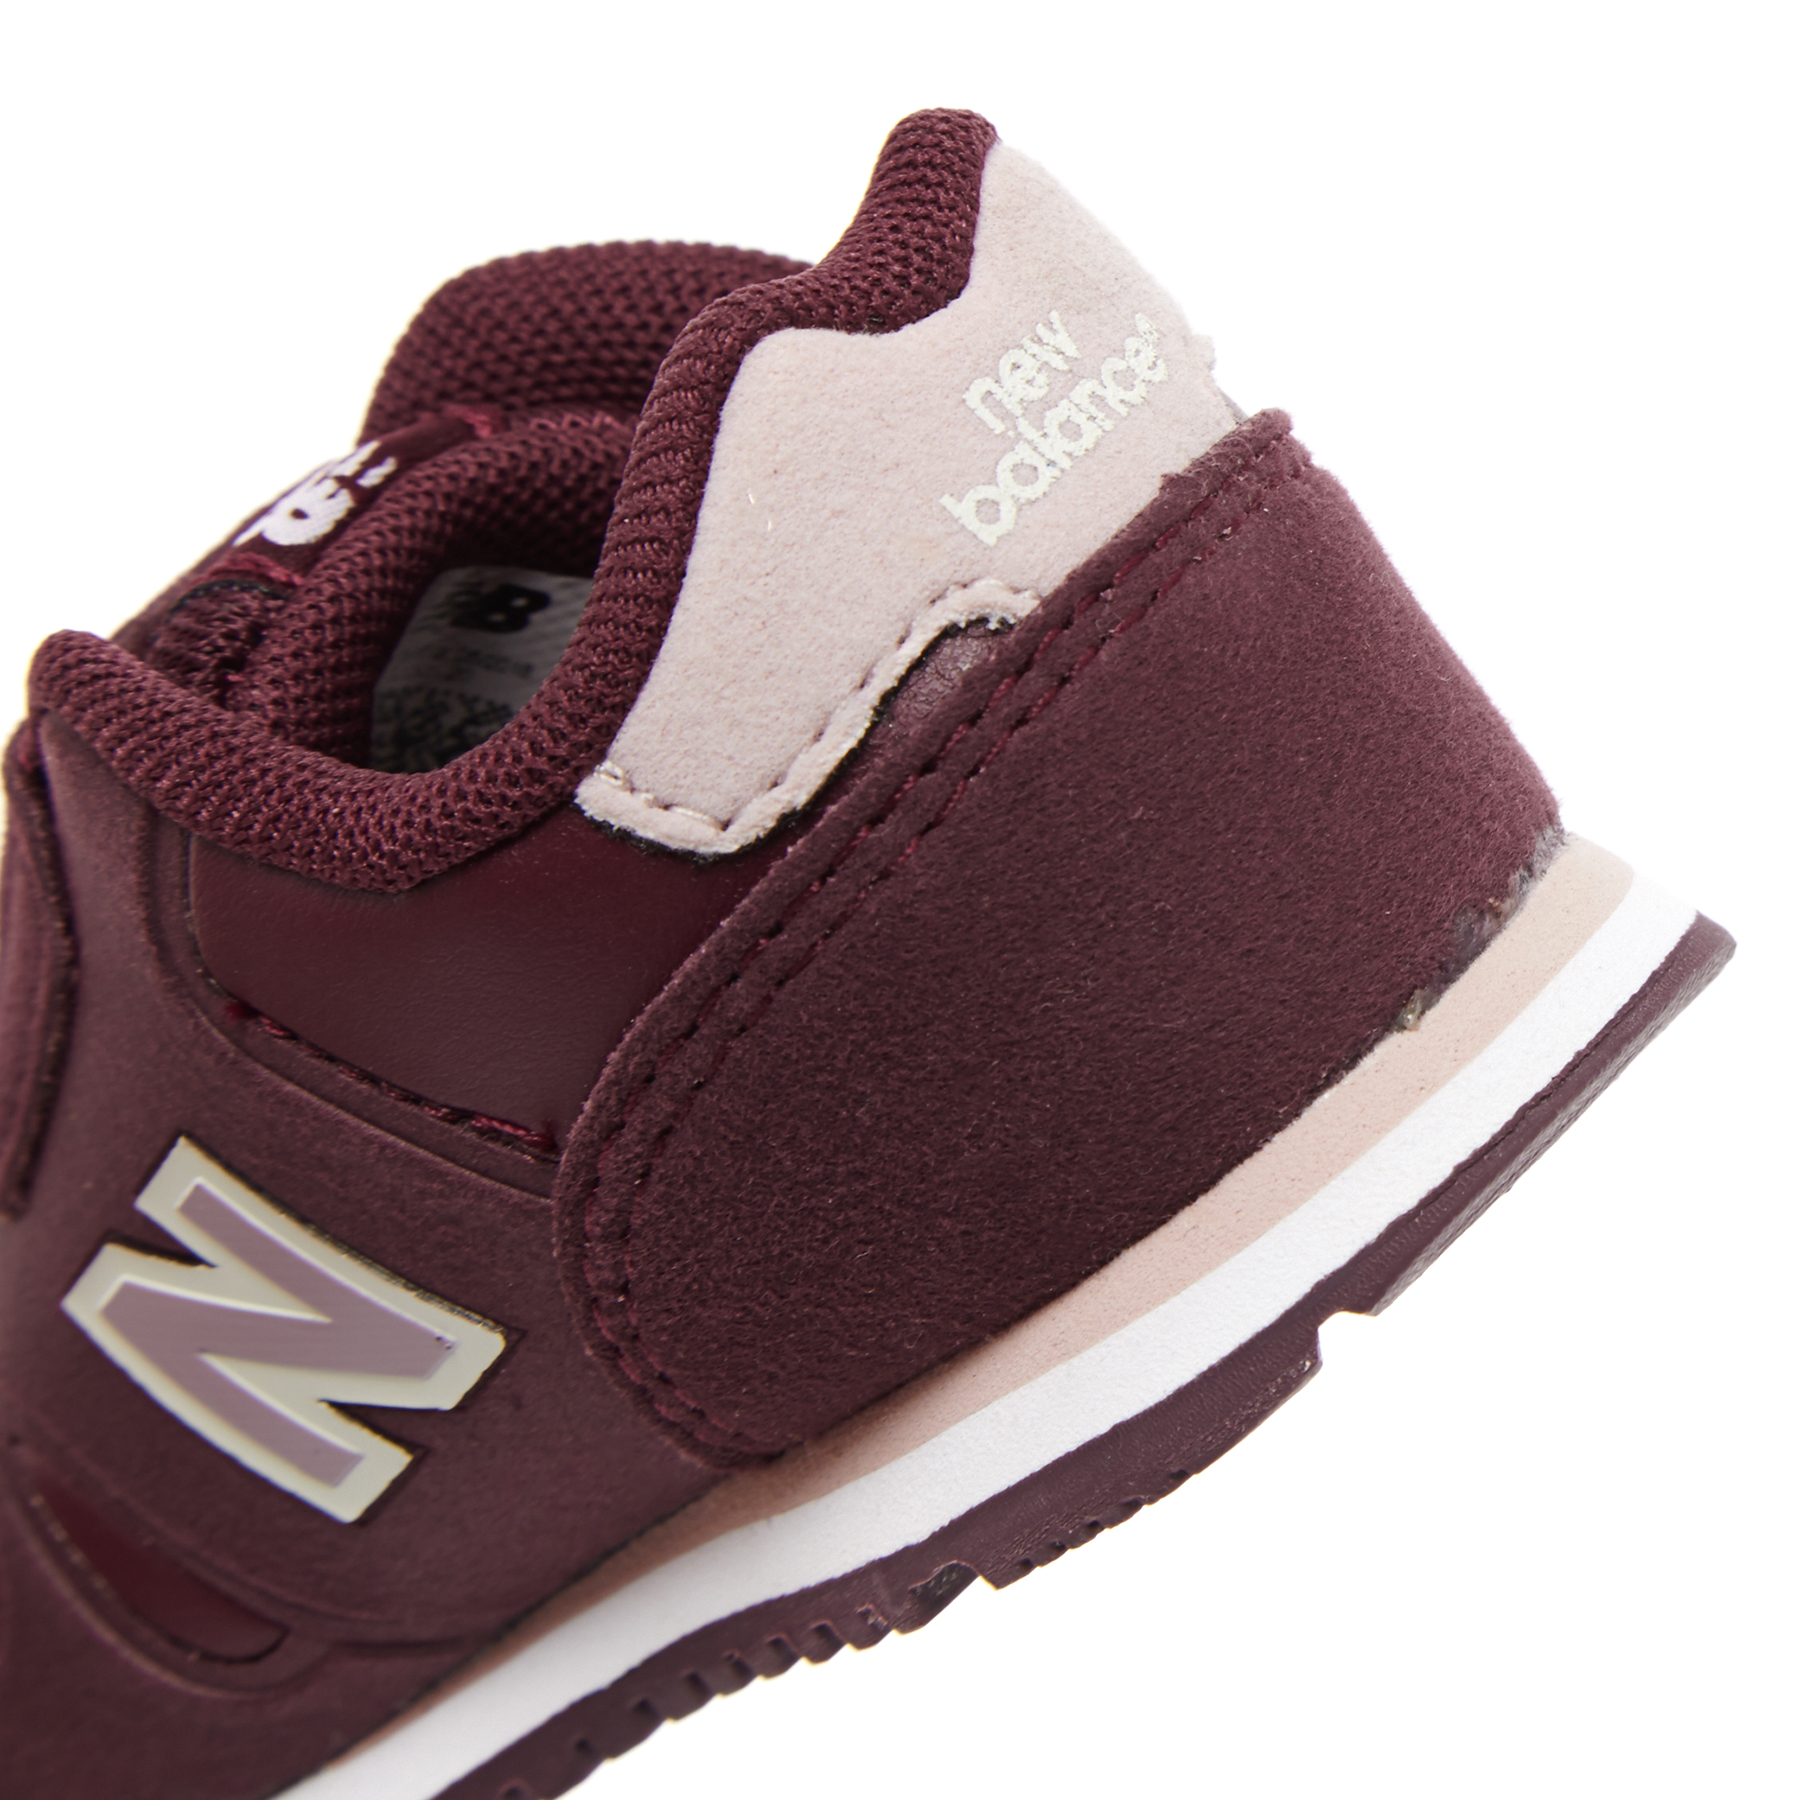 New Balance Infant 373 Kids Shoes - Free Delivery options on All ...